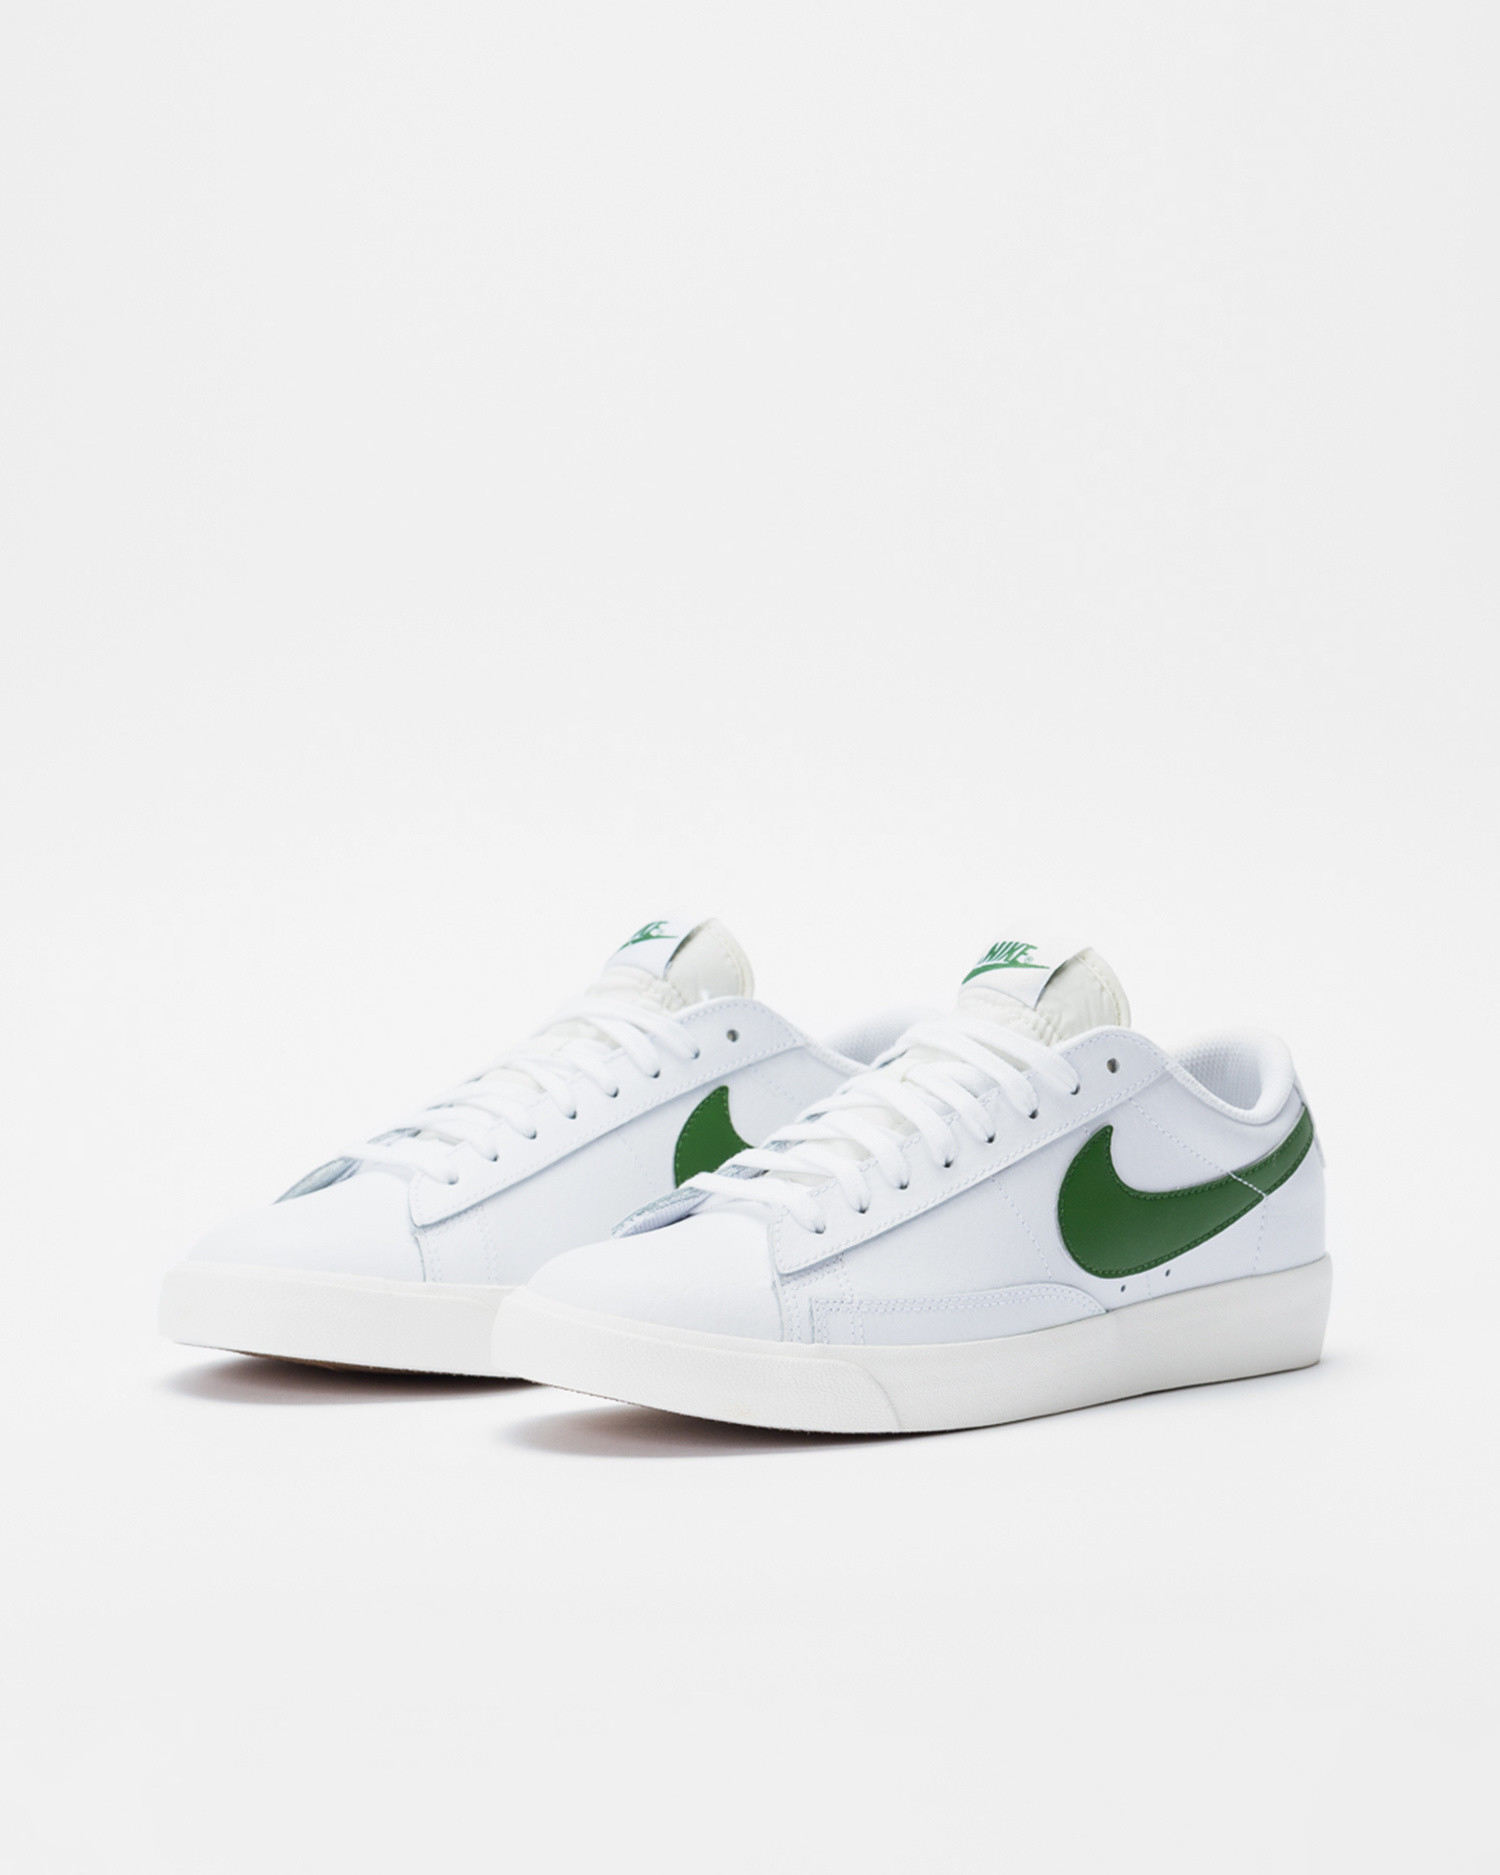 Nike Blazer Low Leather White/Forest Green-Sail